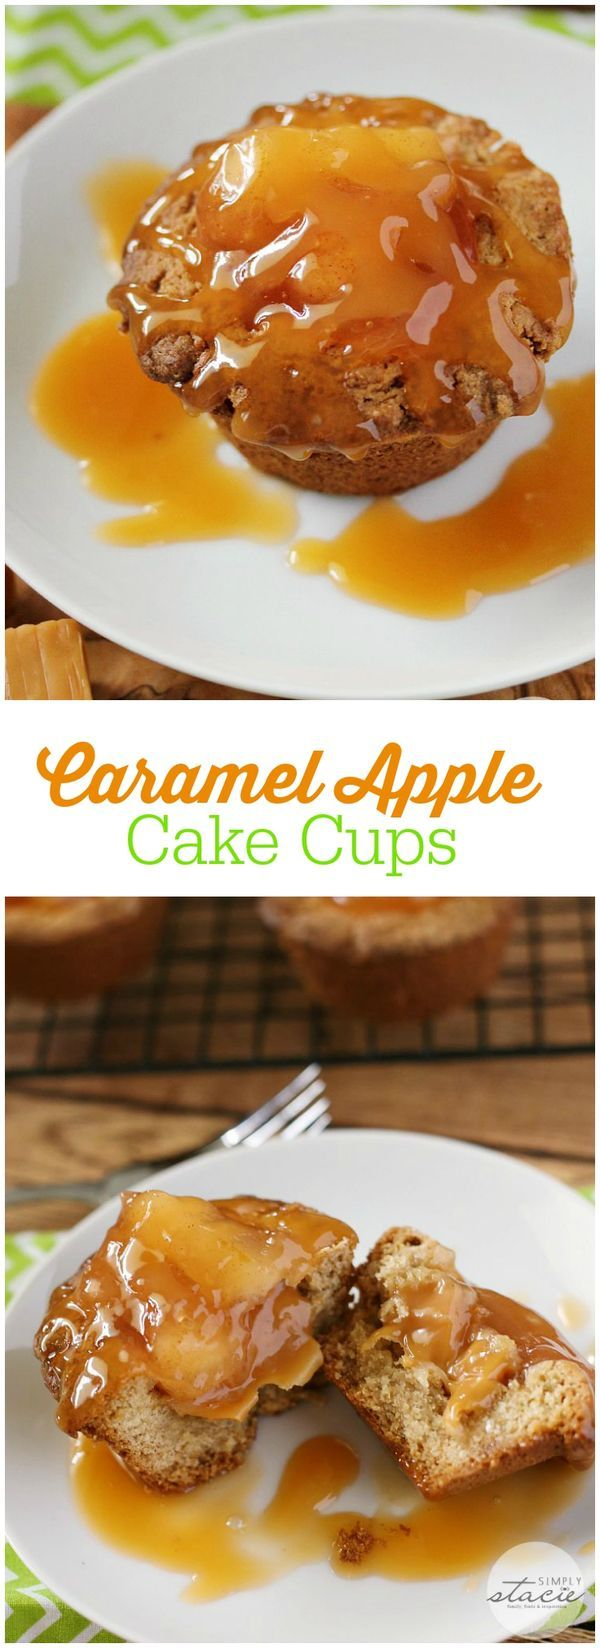 ... on Pinterest | Apple cider, Honey roasted peanuts and Salted caramels